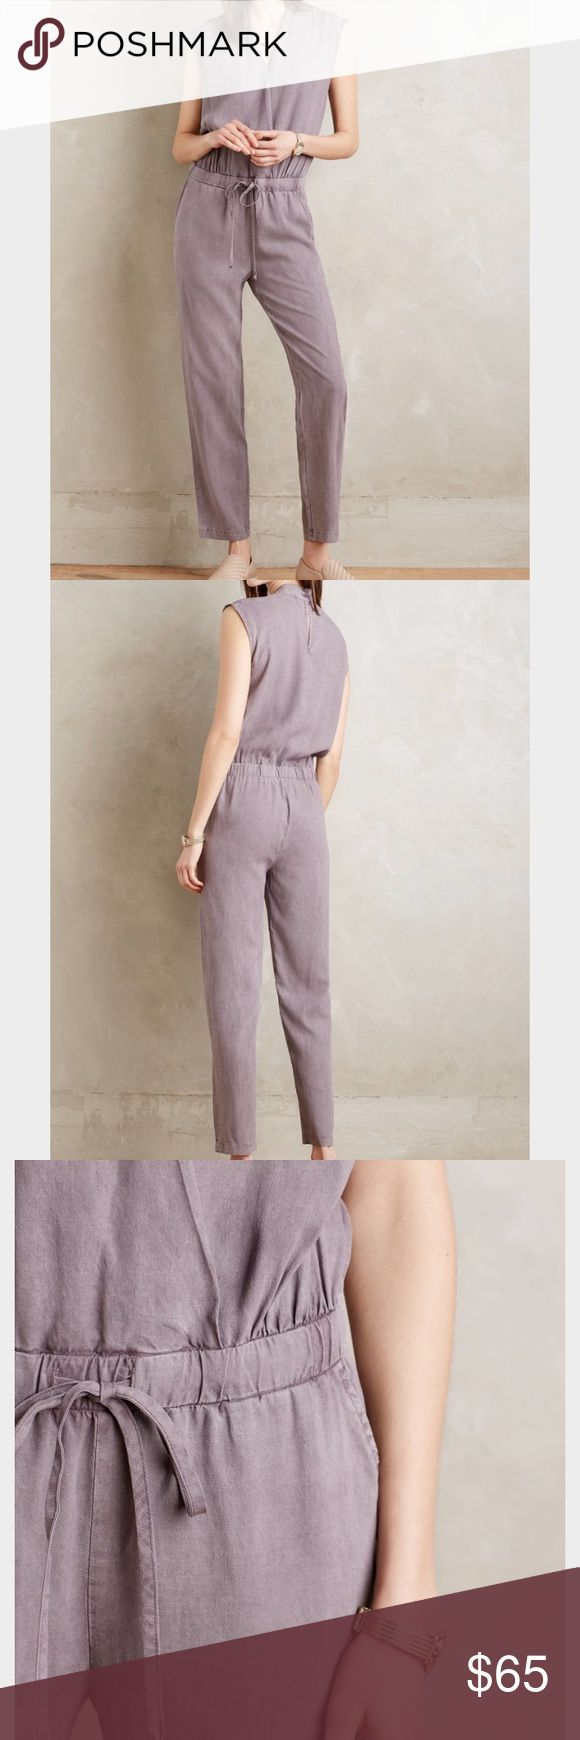 """Cloth and Stone Mignon Crossfront Jumpsuit Size Medium. Literally worn once... too big for me (I'm 5'6"""", 135 lbs). It is the same color as pictured, in perfect condition w/out tags. Would work better on someone taller. Made of buttery-soft Lyocell. Would love this piece in my correct size, it's so cute! Last picture shows me wearing it with a gray t shirt underneath (for work). That was the one time I wore it and I received countless compliments. 😄 Anthropologie Other"""